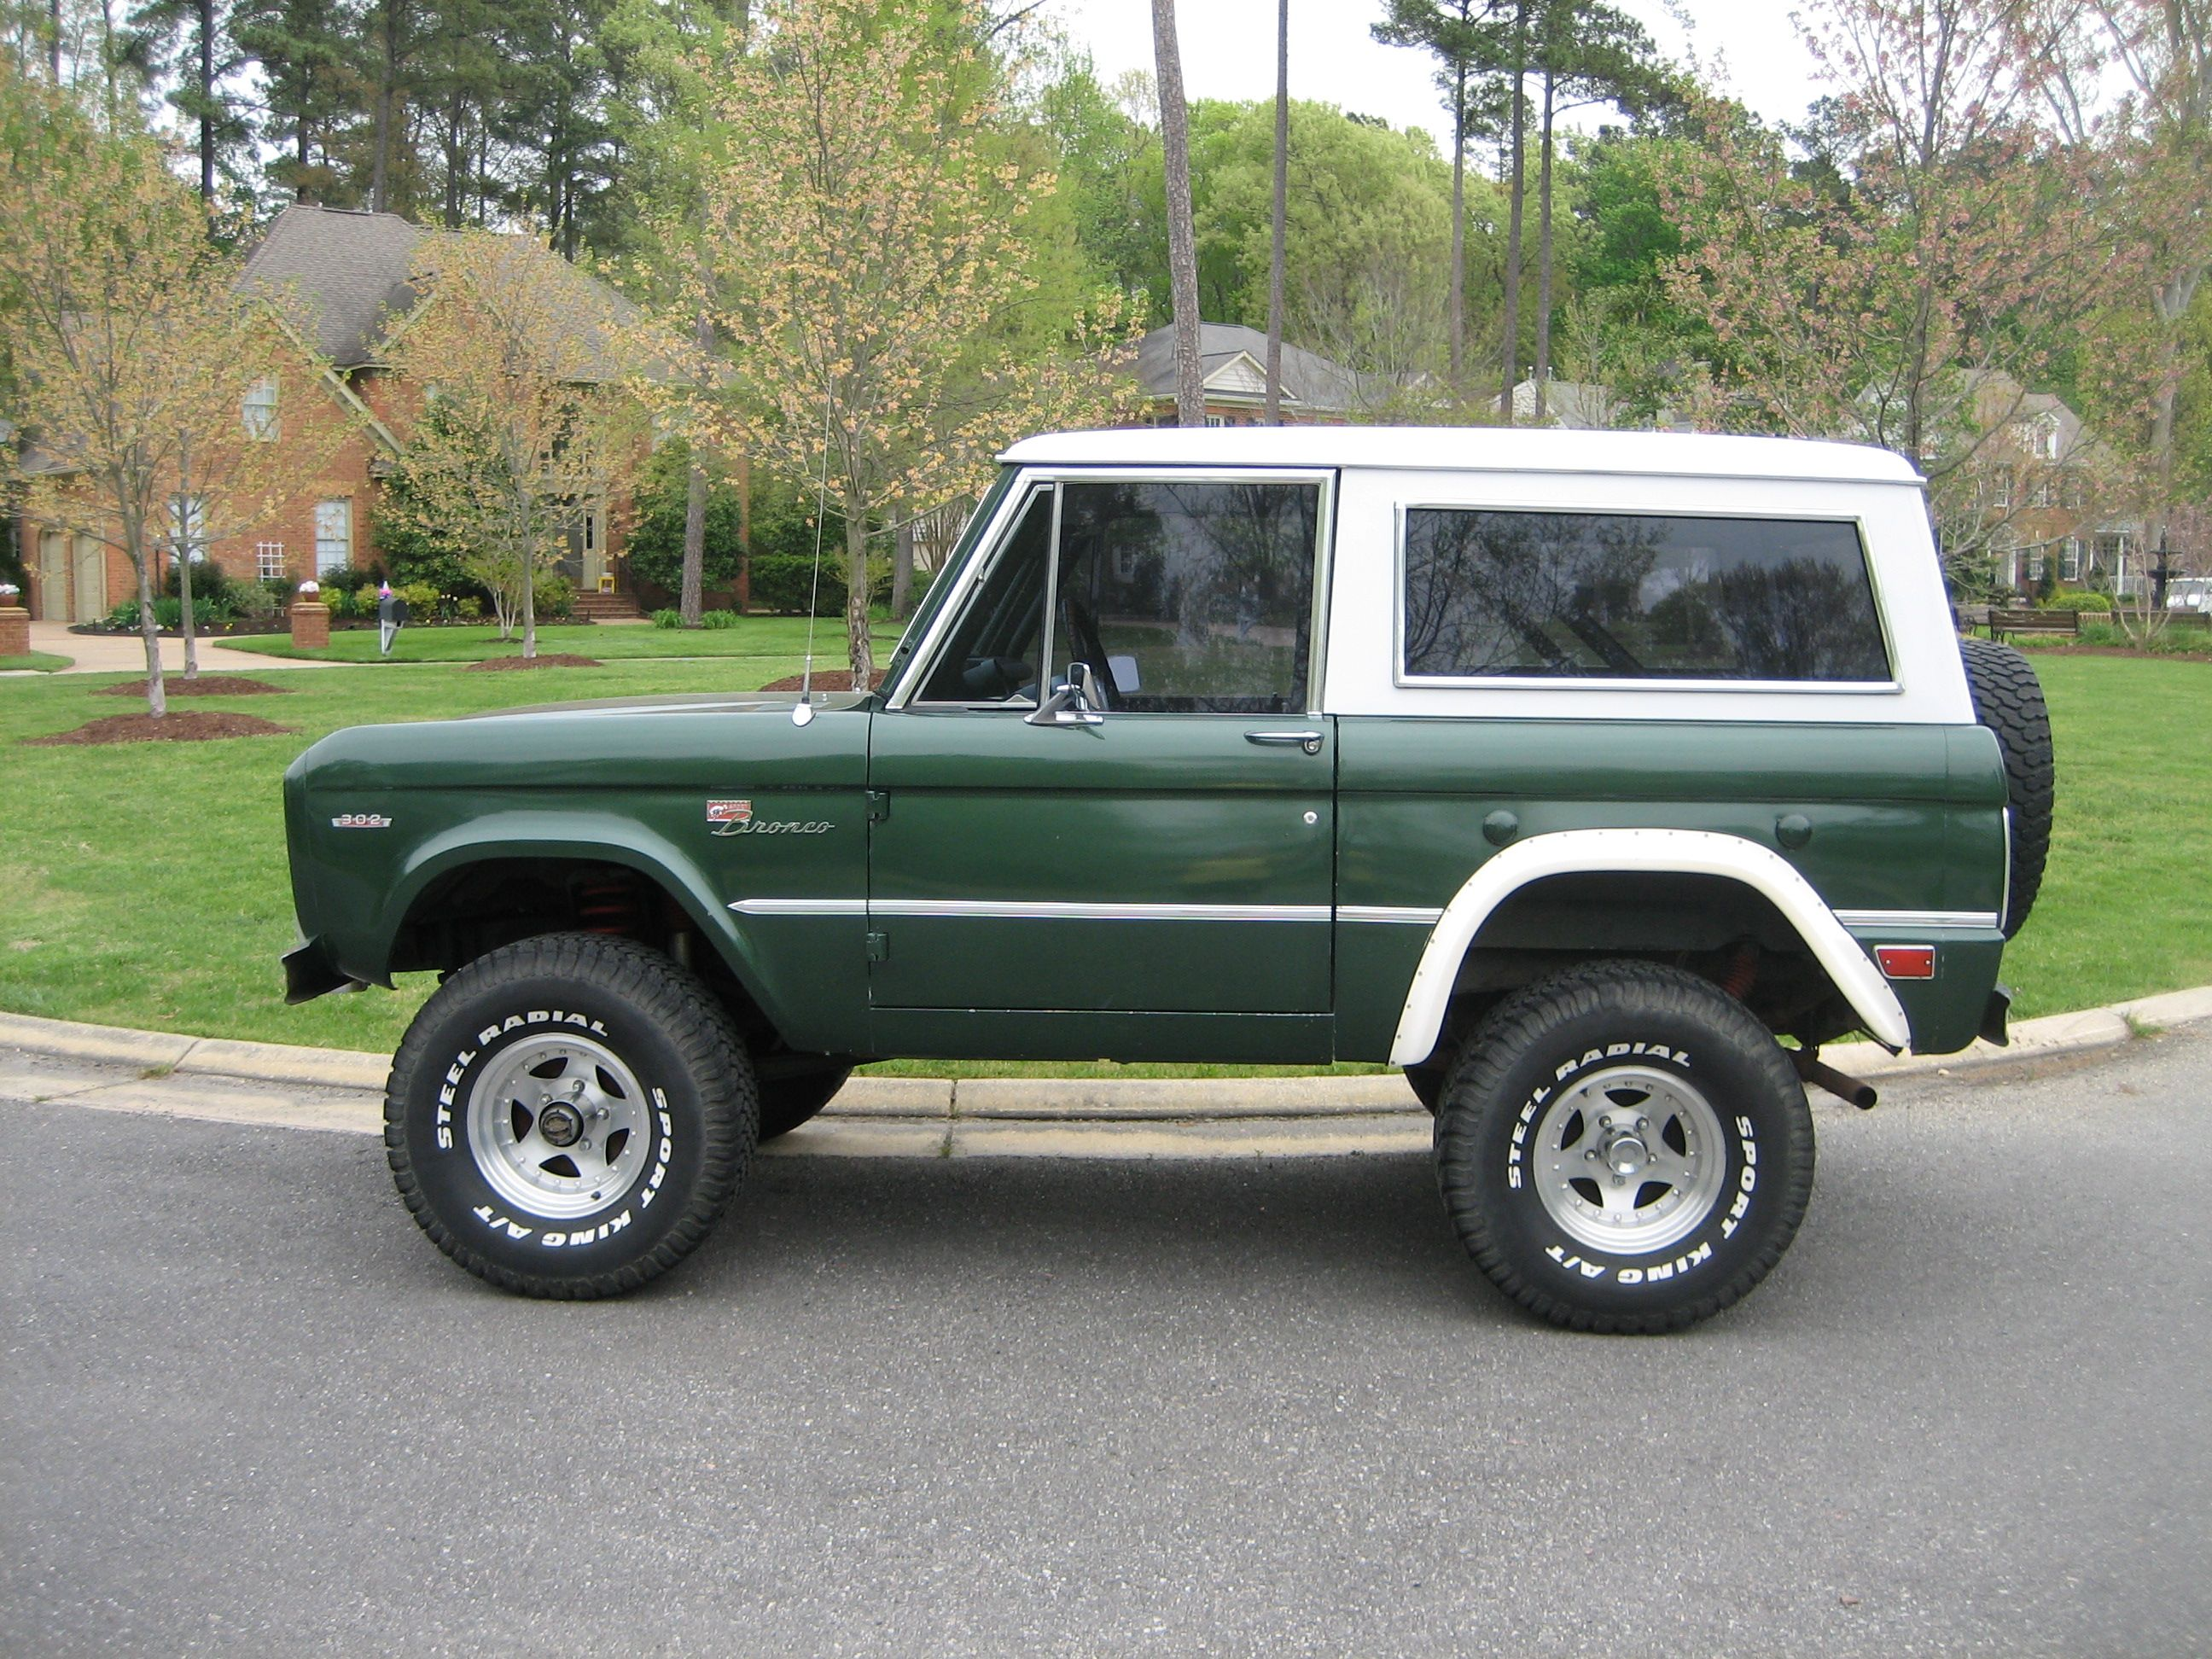 New u0026 Used Classic Cars for Sale - Classics on Autotrader & ford bronco | 1969 Ford Bronco - Smithfield 23430 - 0 | Ford ... markmcfarlin.com